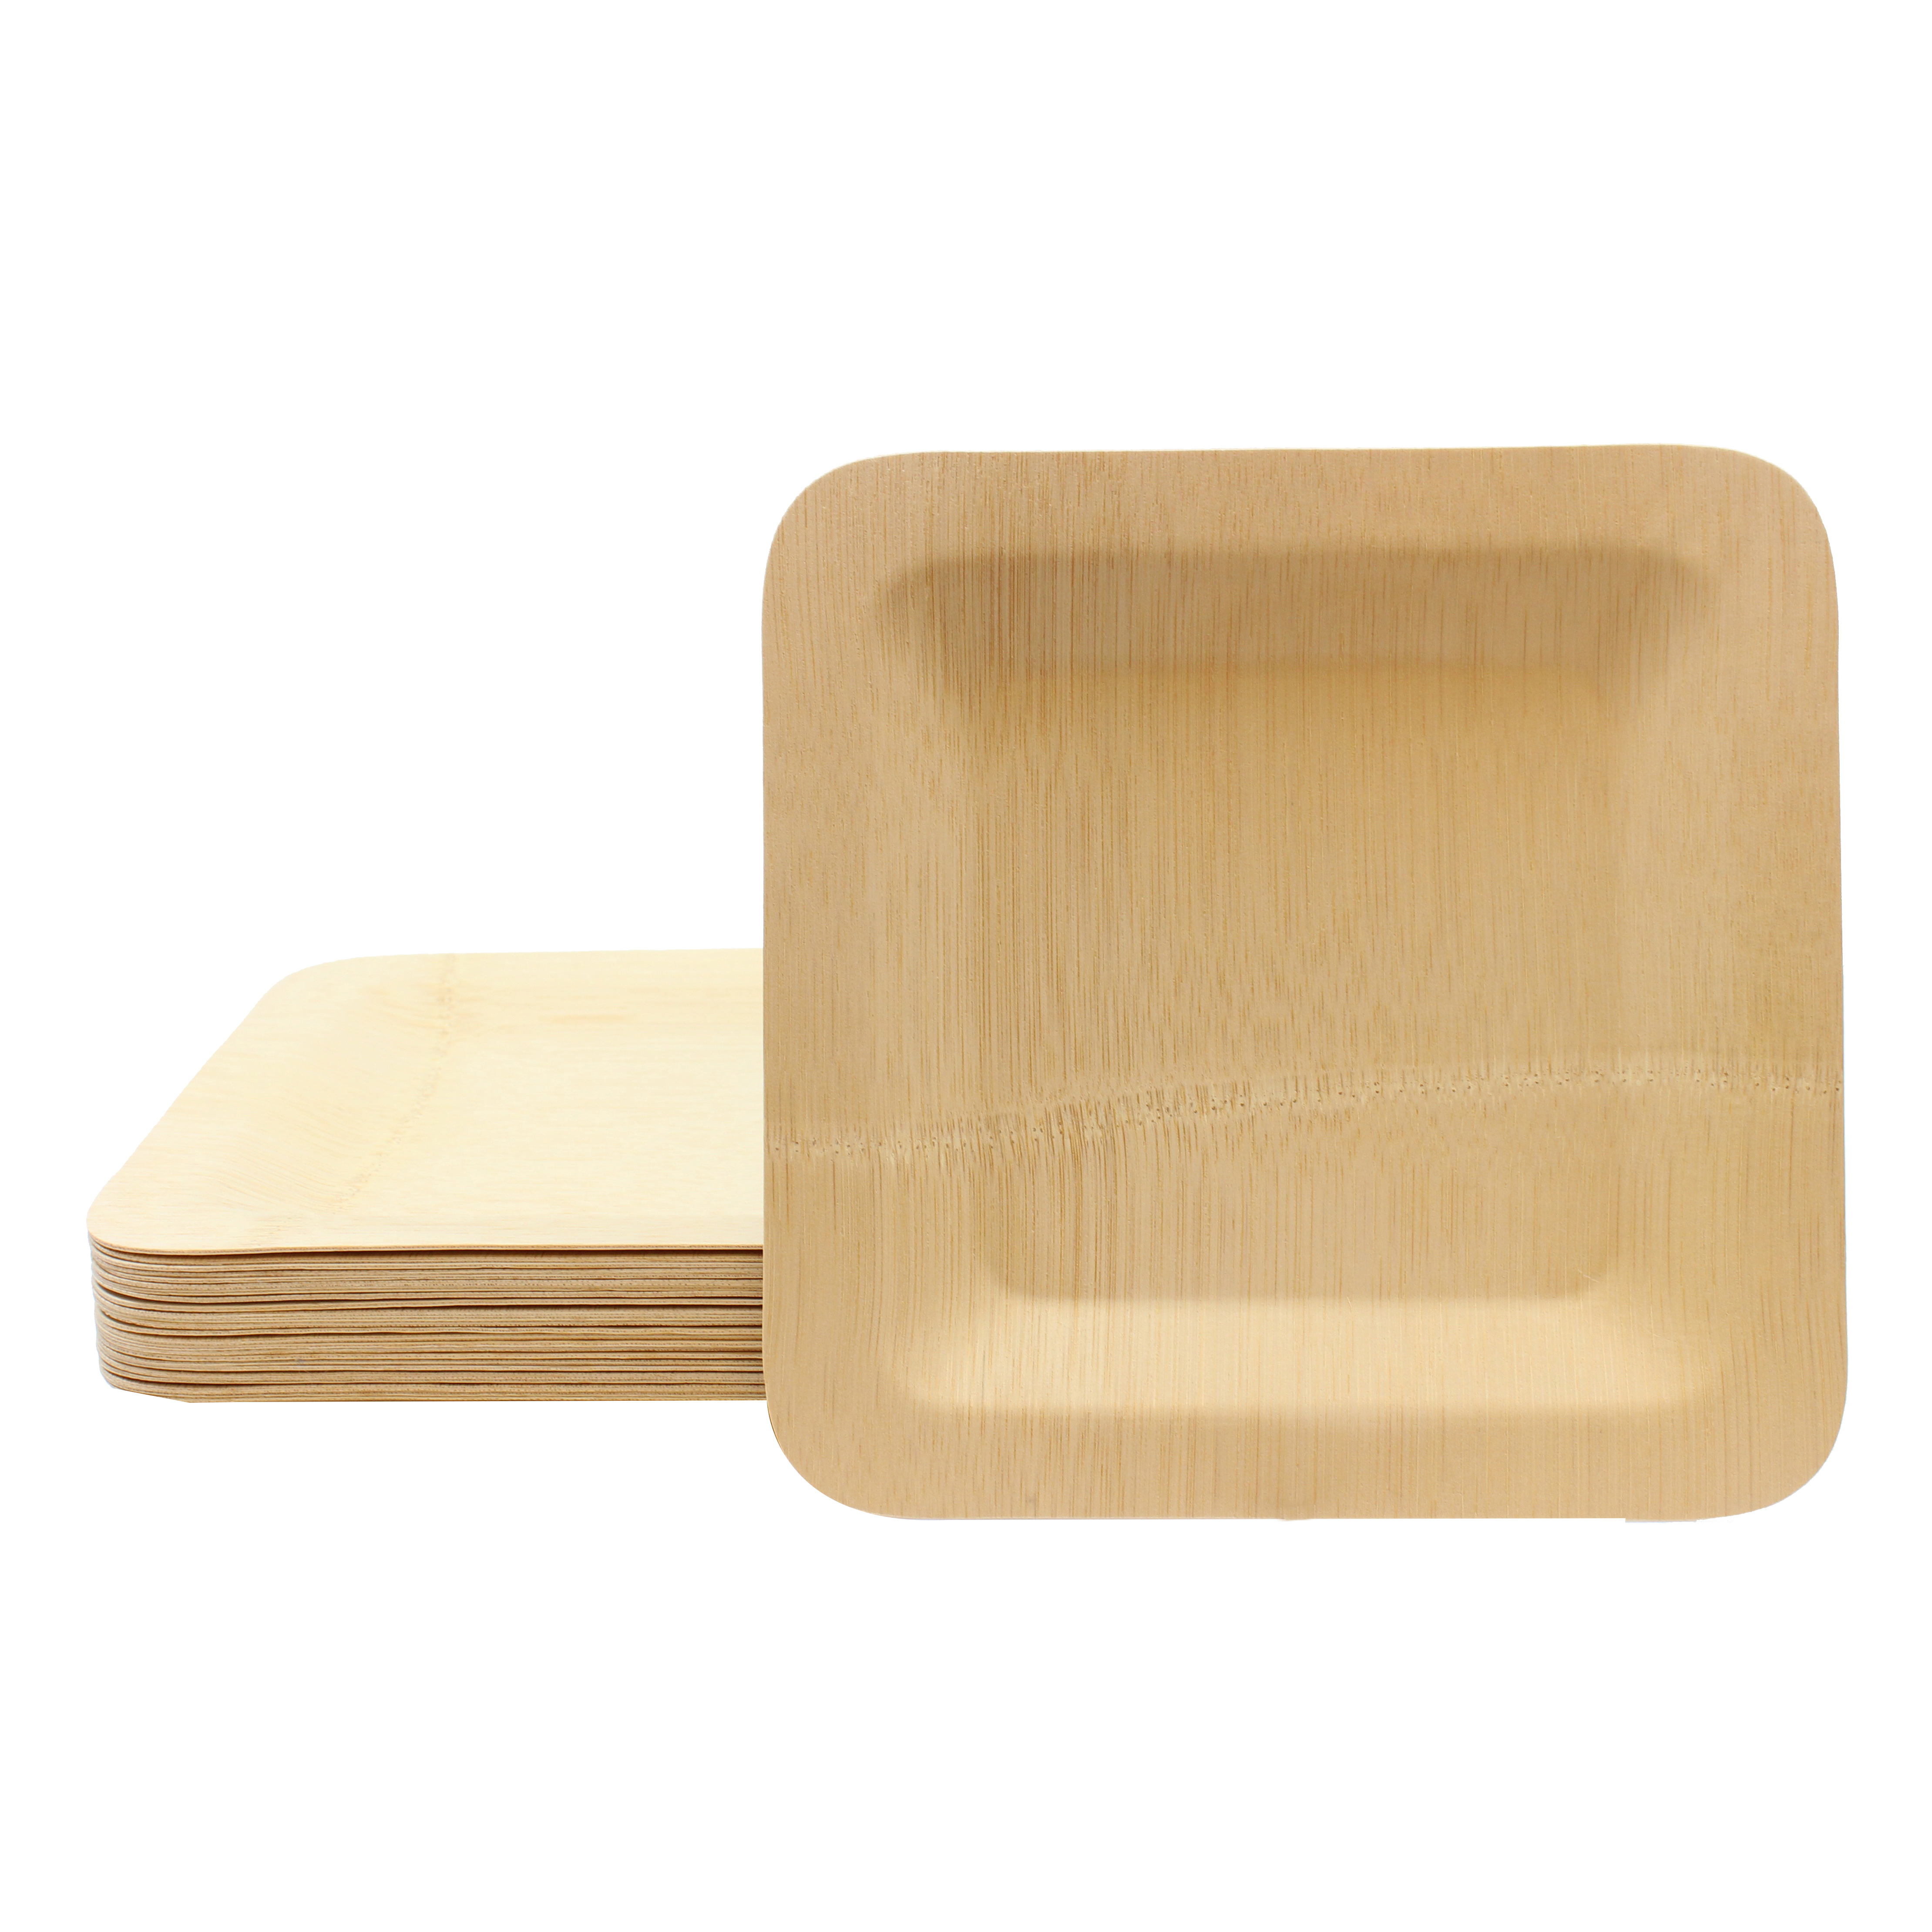 TableCraft Products BAMDSP7 disposable plates